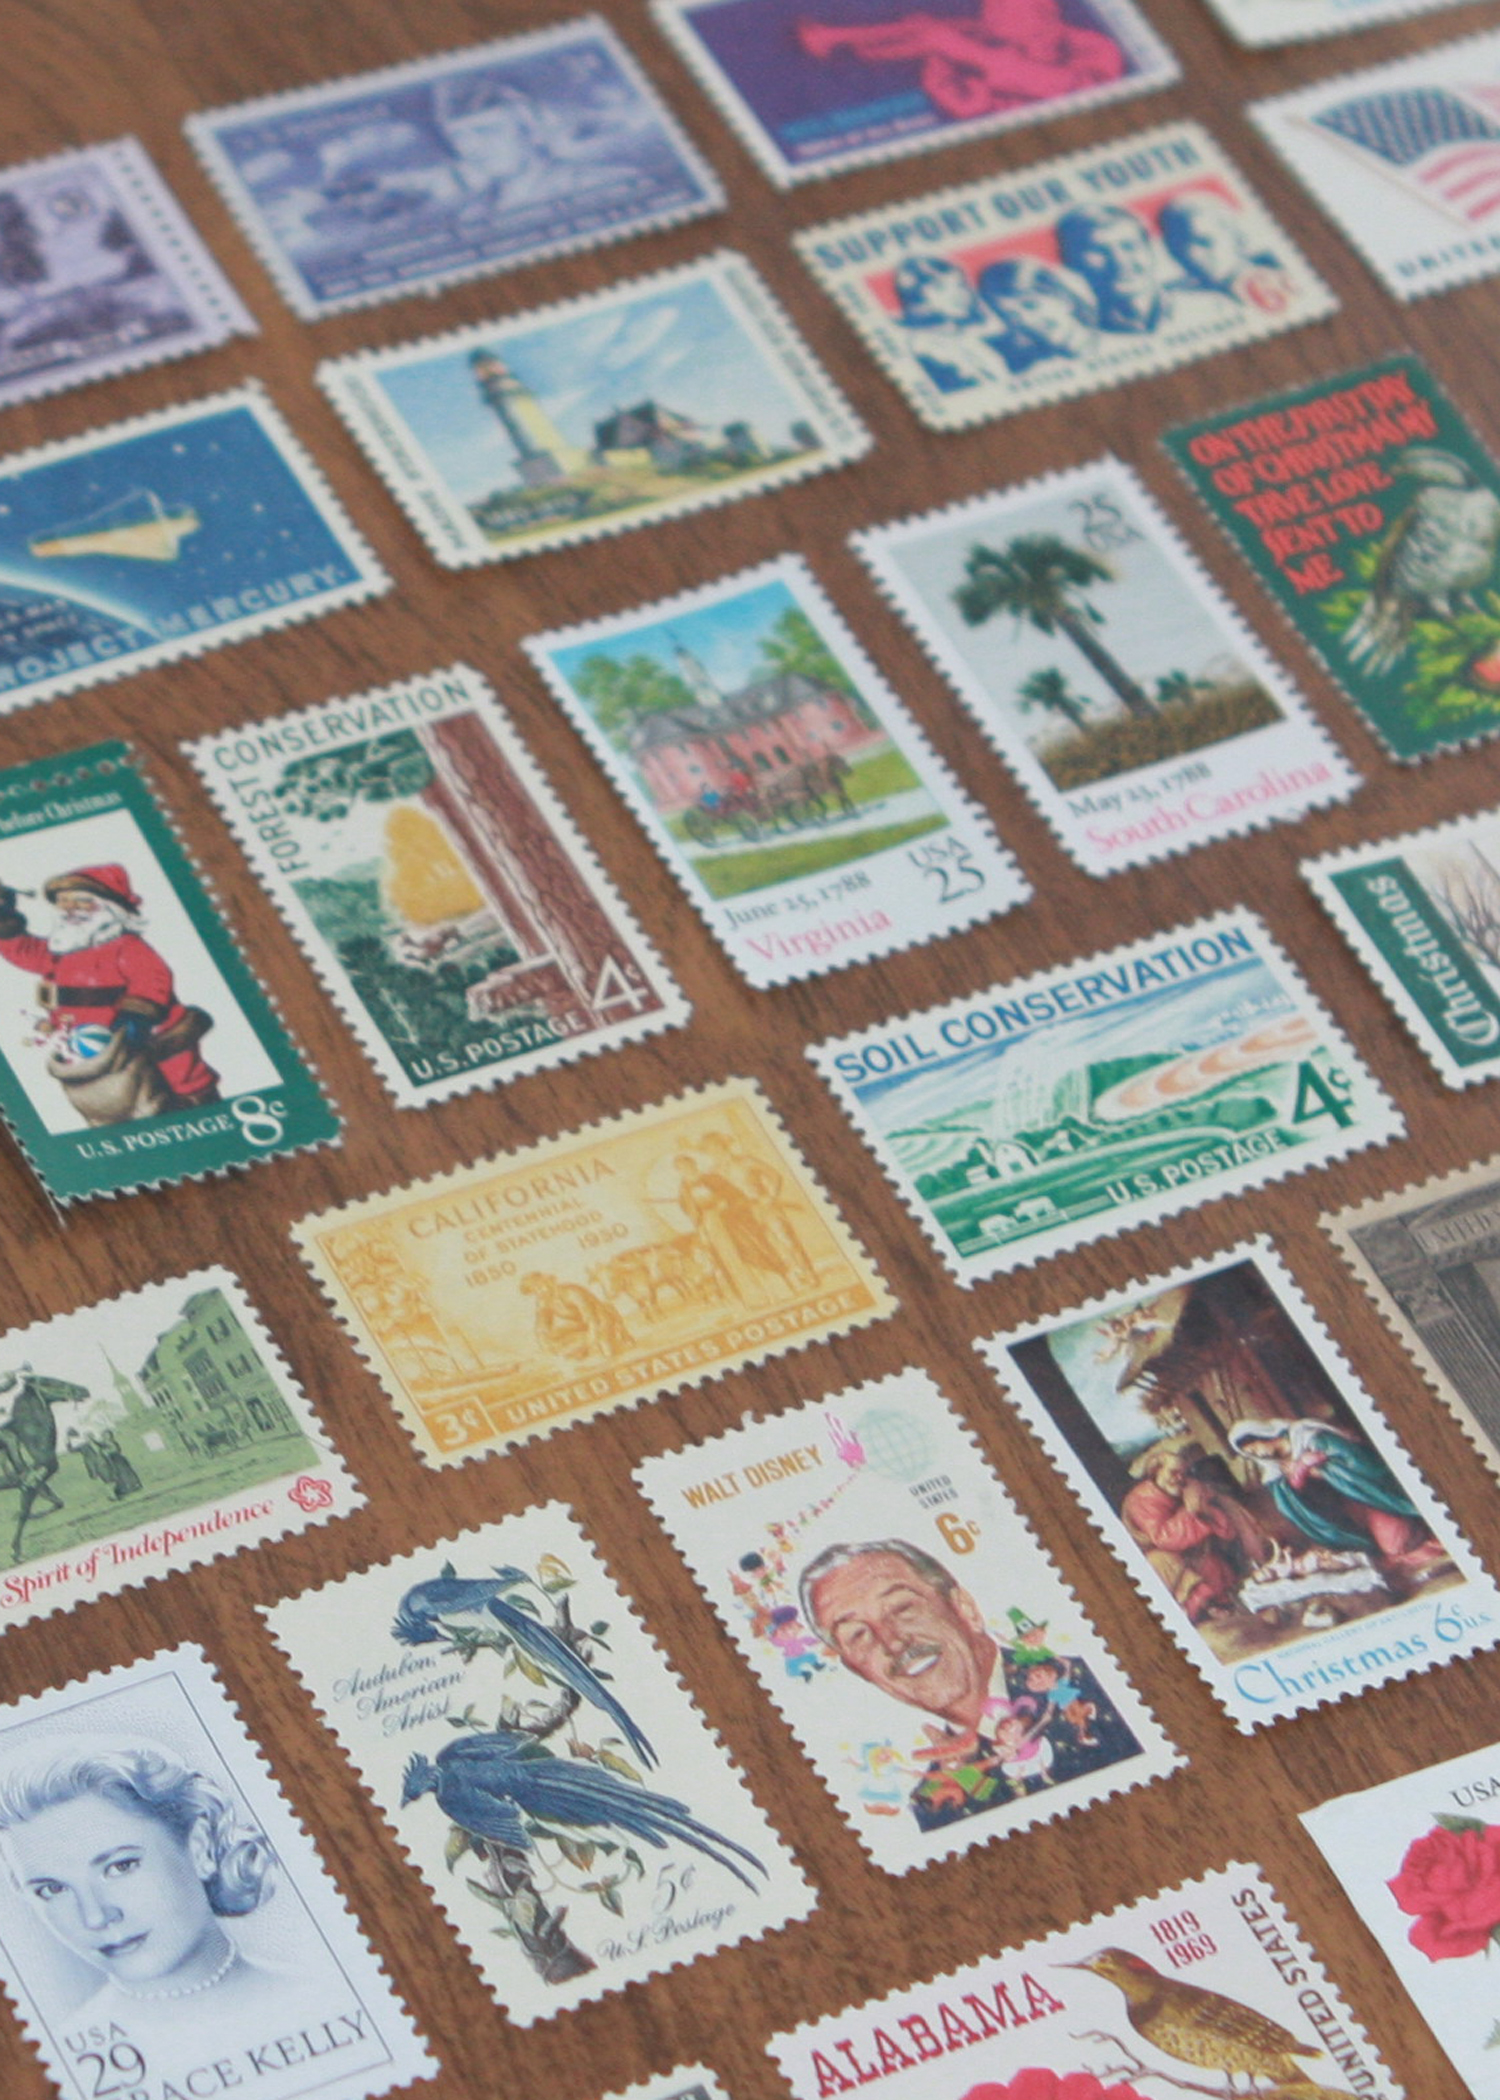 stamps8.jpg